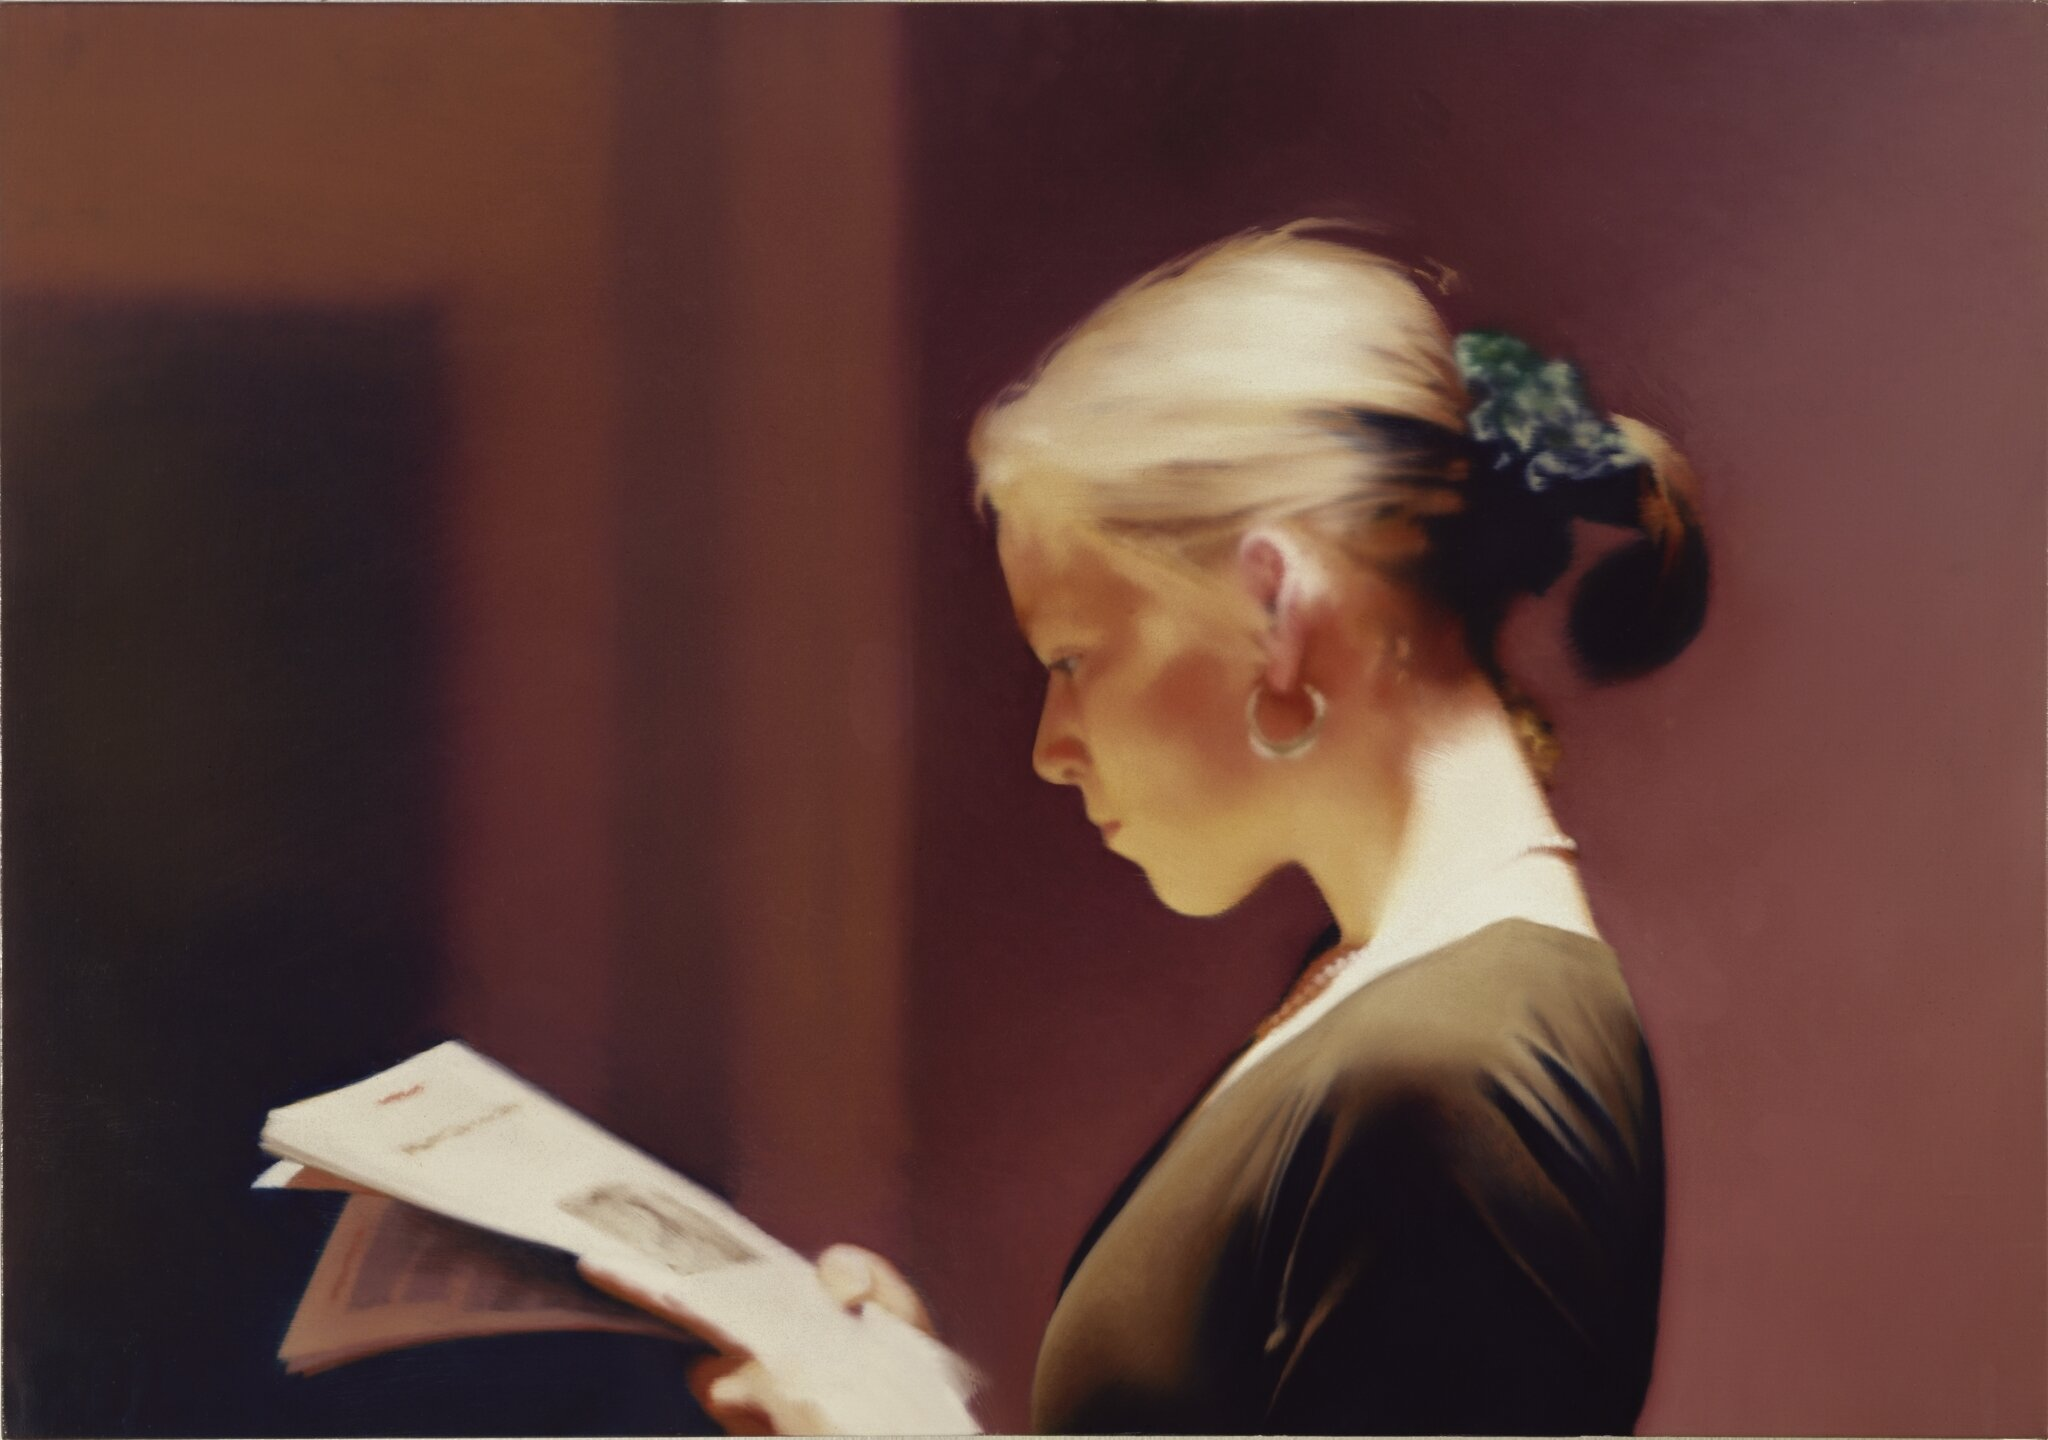 Brisbane's Gallery of Modern Art opens extensive exhibition of works by Gerhard Richter